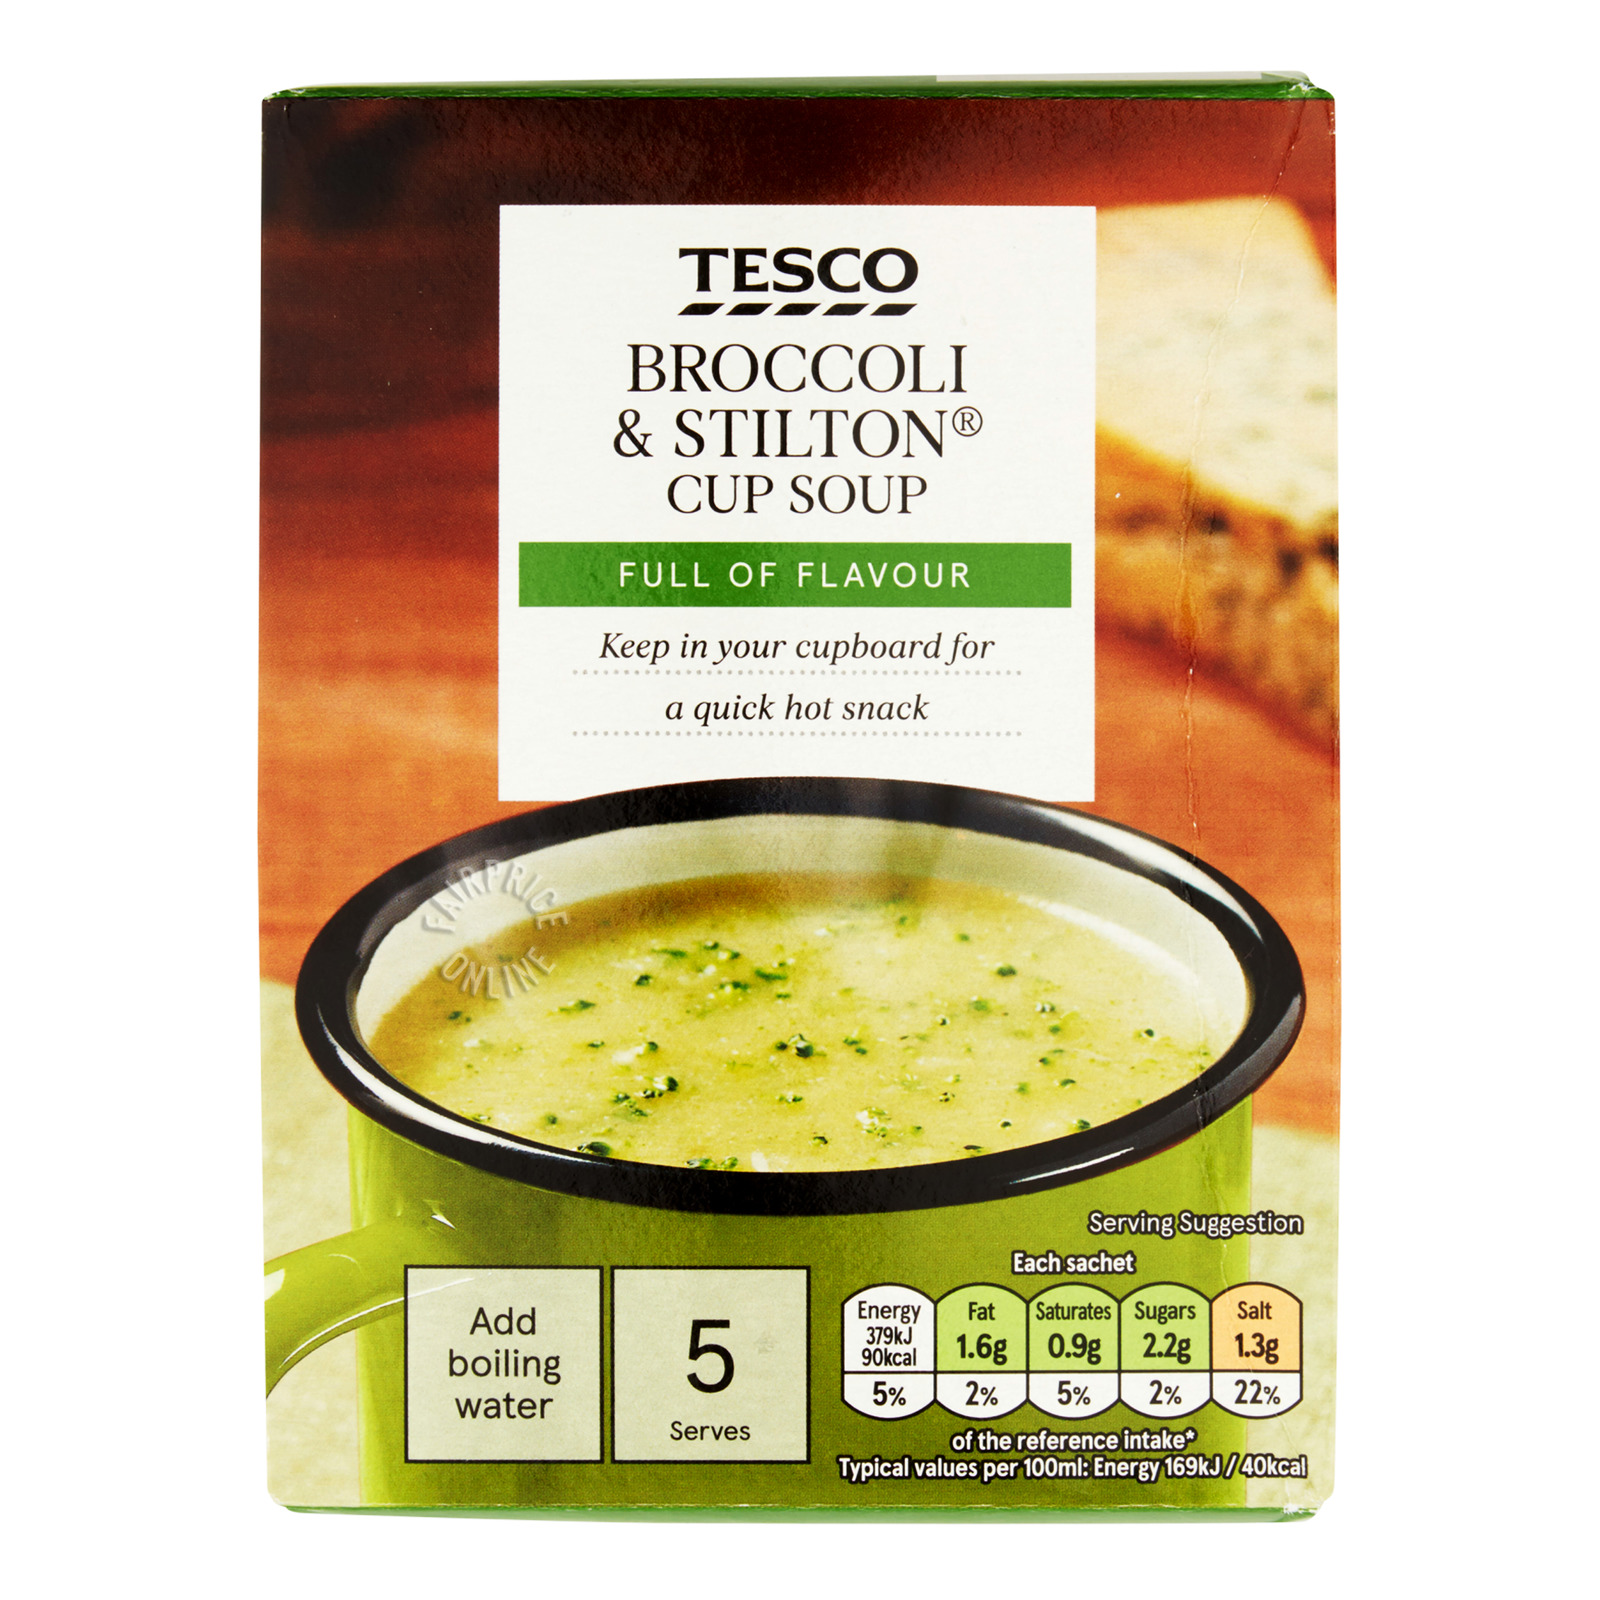 Tesco Instant Cup Soup - Broccoli & Stilton